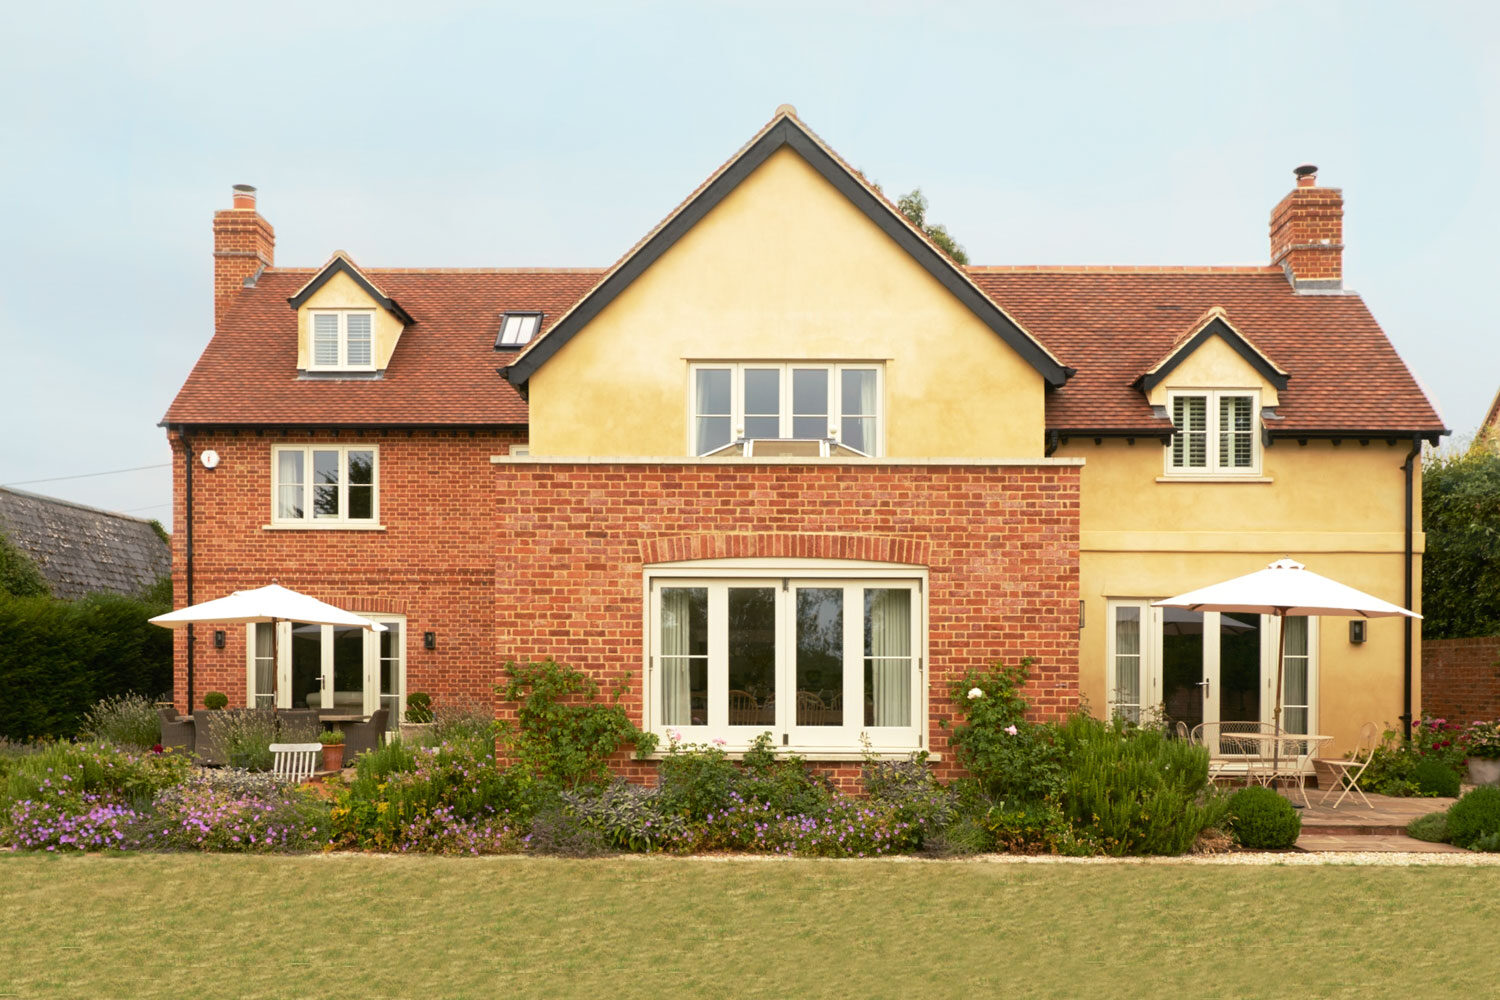 NEW BUILD FAMILY HOME, OXFORDSHIRE VILLAGE